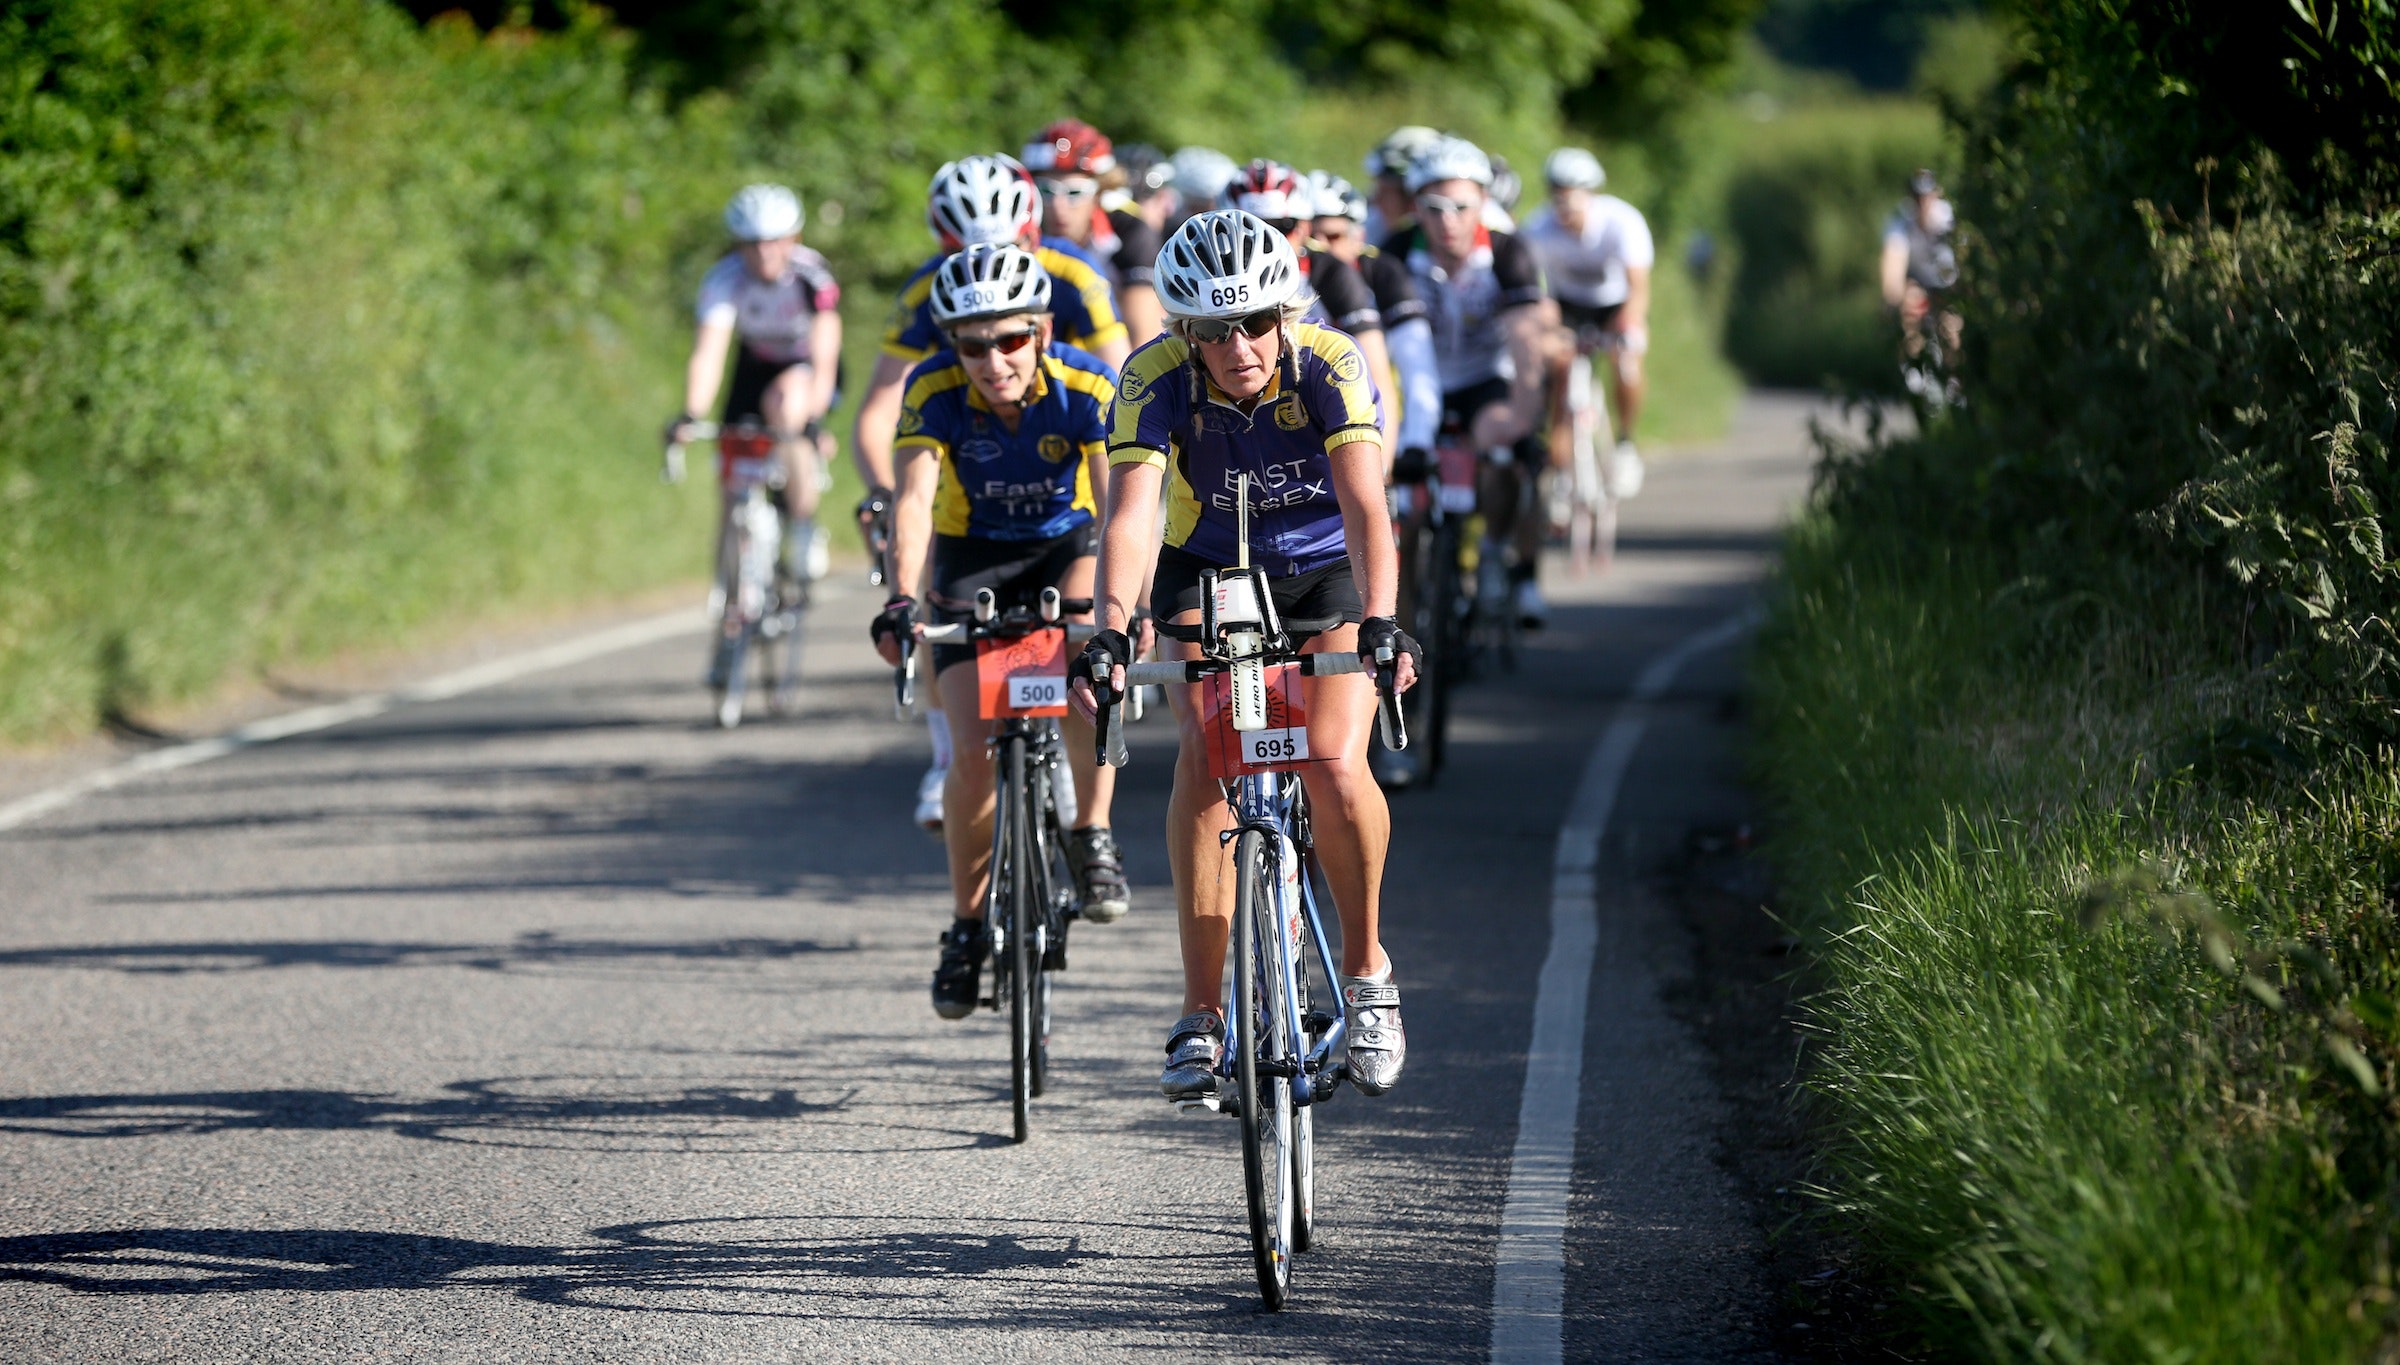 Riders, London Cycle Sportive 2013, Pic submitted by Gill McVeigh, Human Race